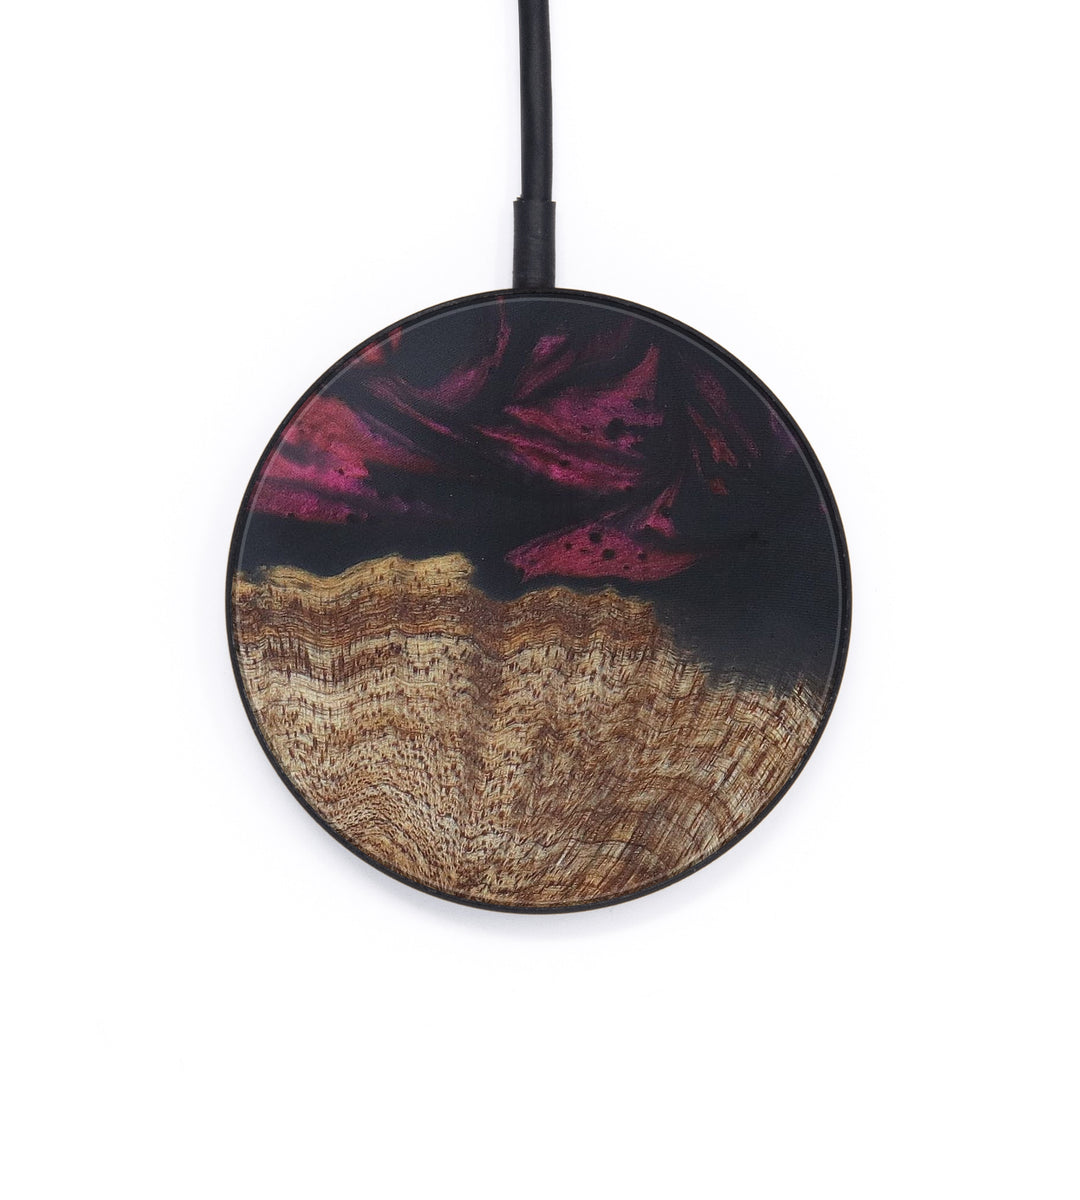 Circle Wood+Resin Wireless Charger - Alisun (Dark Red, 406356)